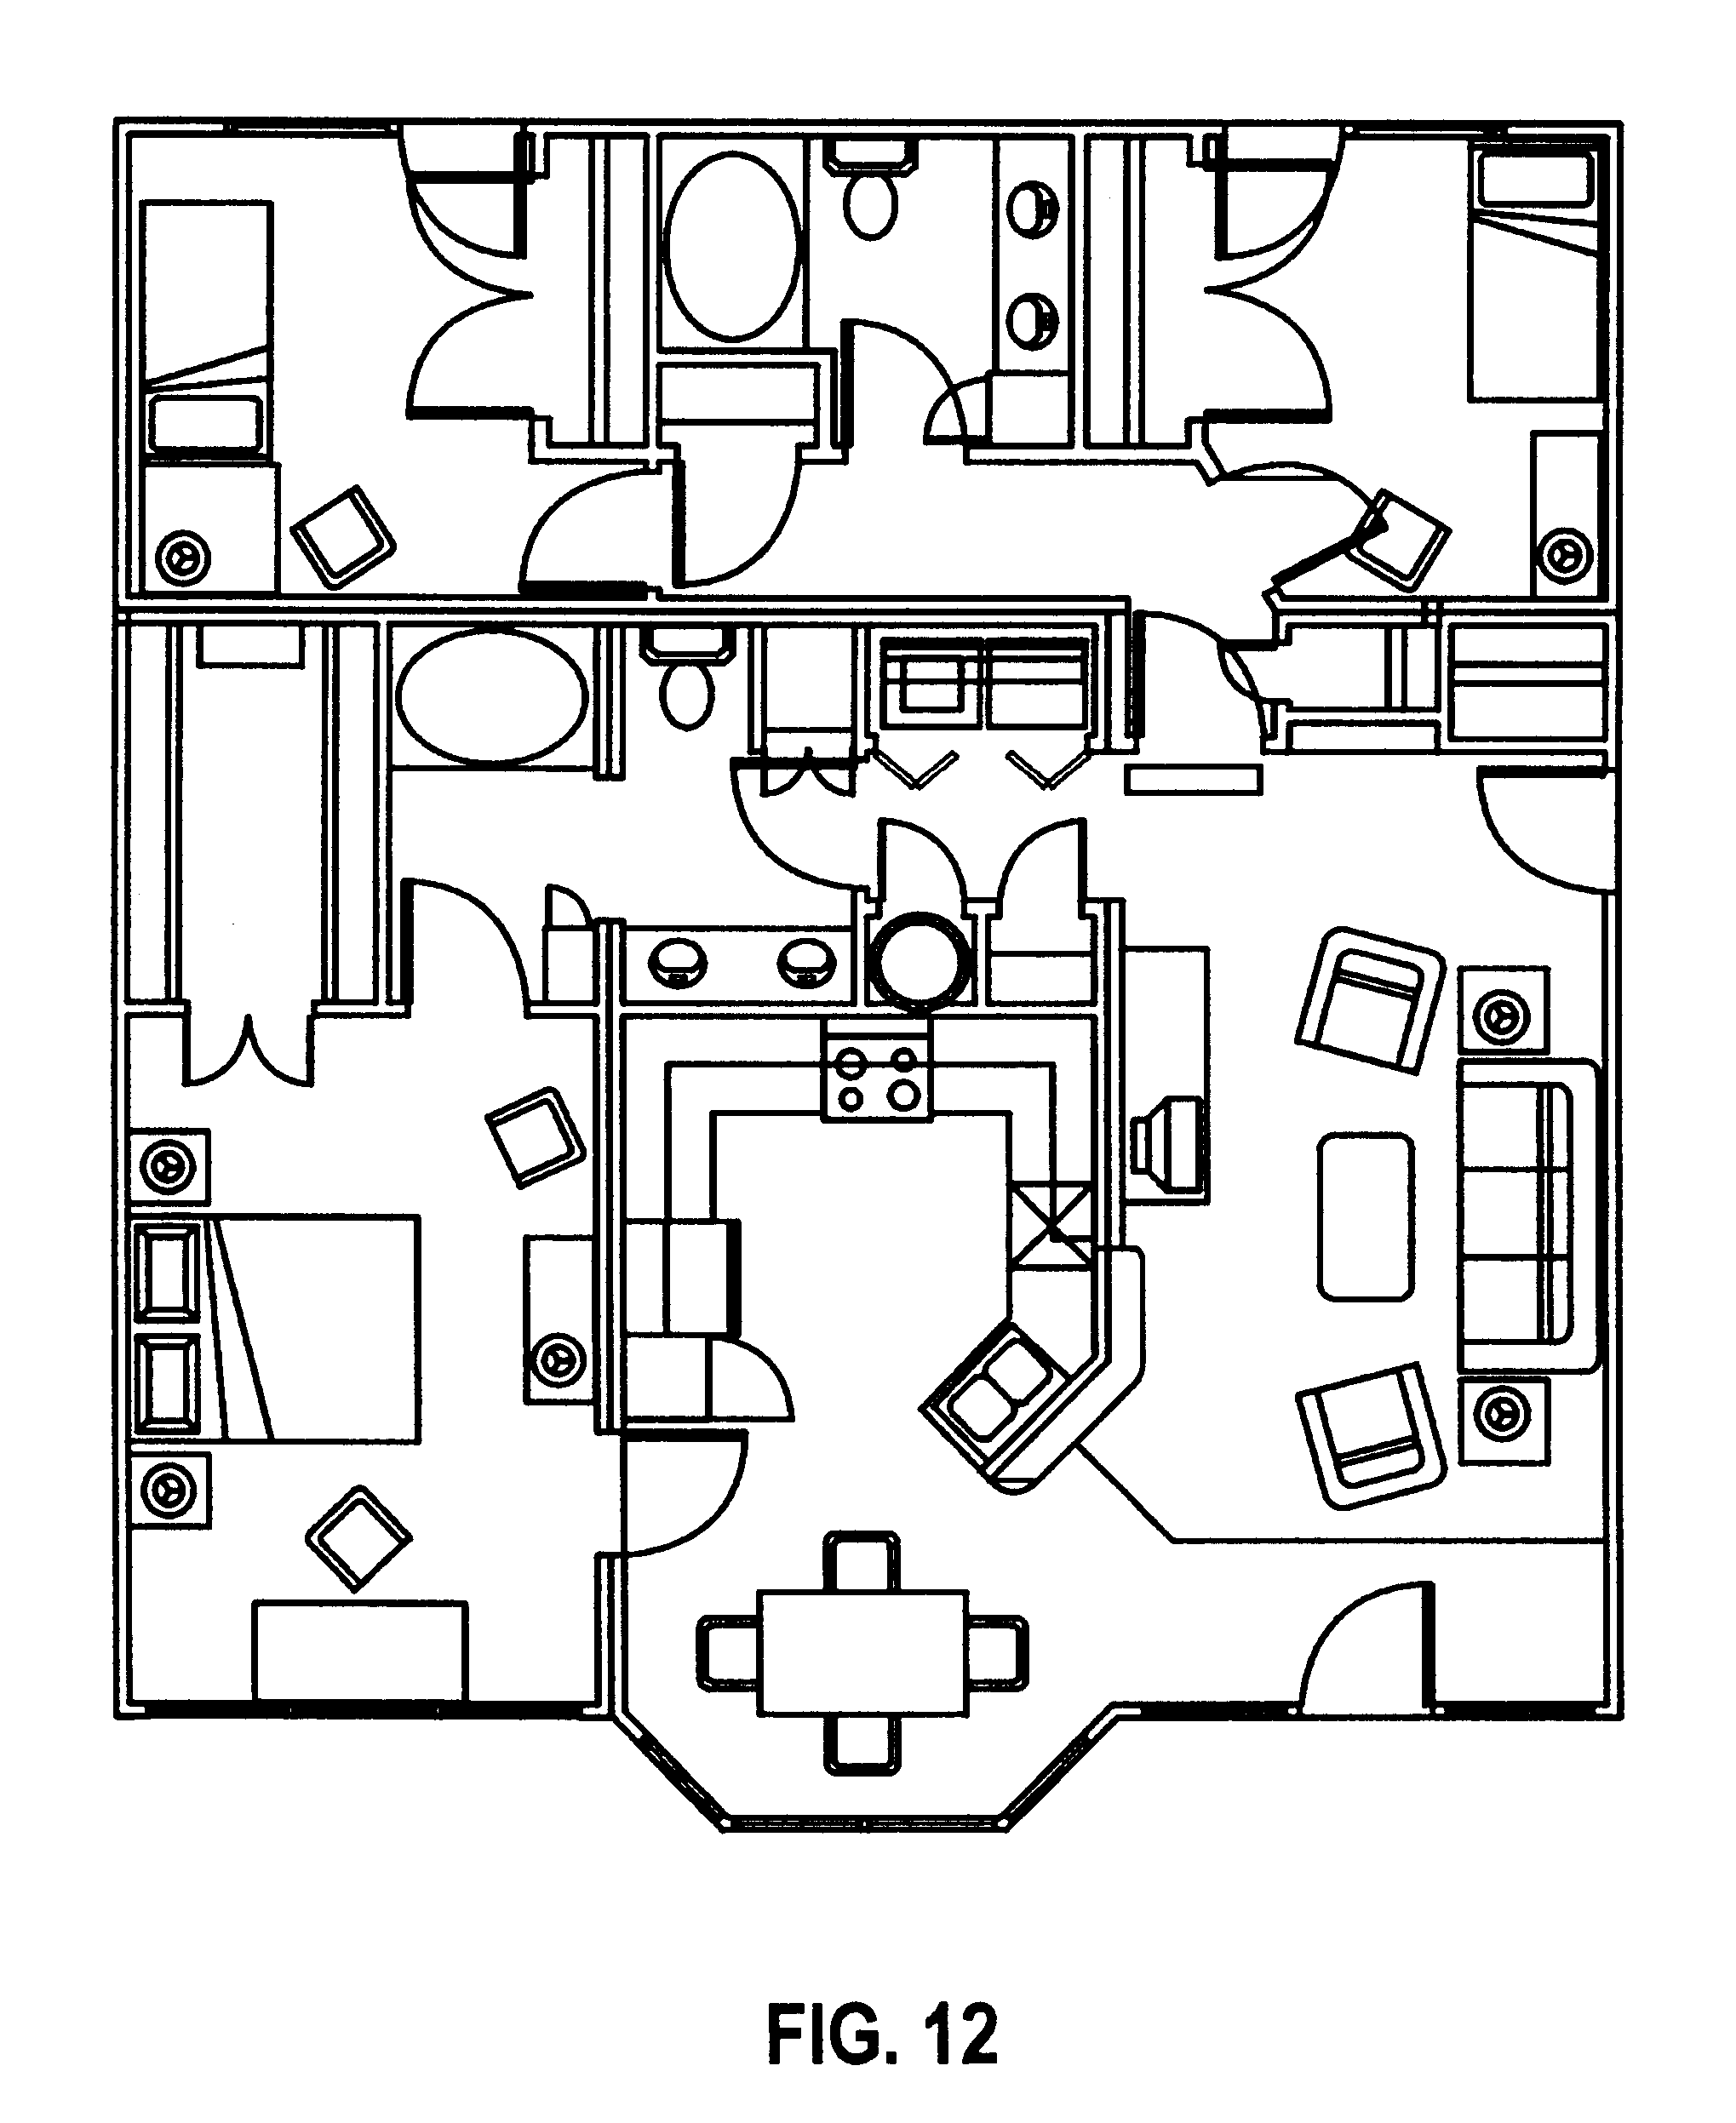 Electrical drawing of a 3 bedroom flat the wiring diagram